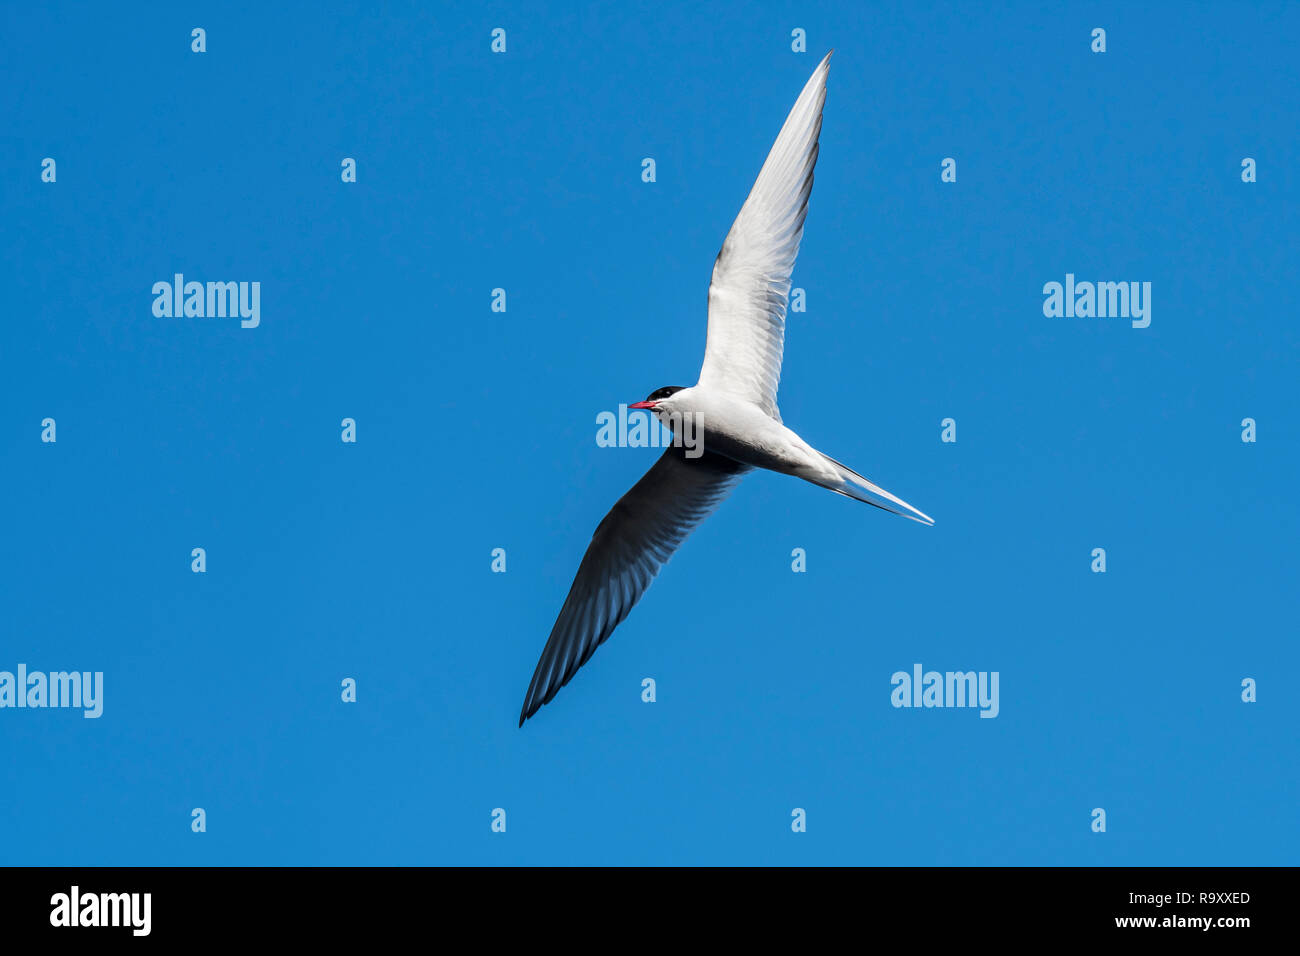 Arctic tern (Sterna paradisaea) in flight, soaring against blue sky, Shetland Islands, Scotland, UK - Stock Image